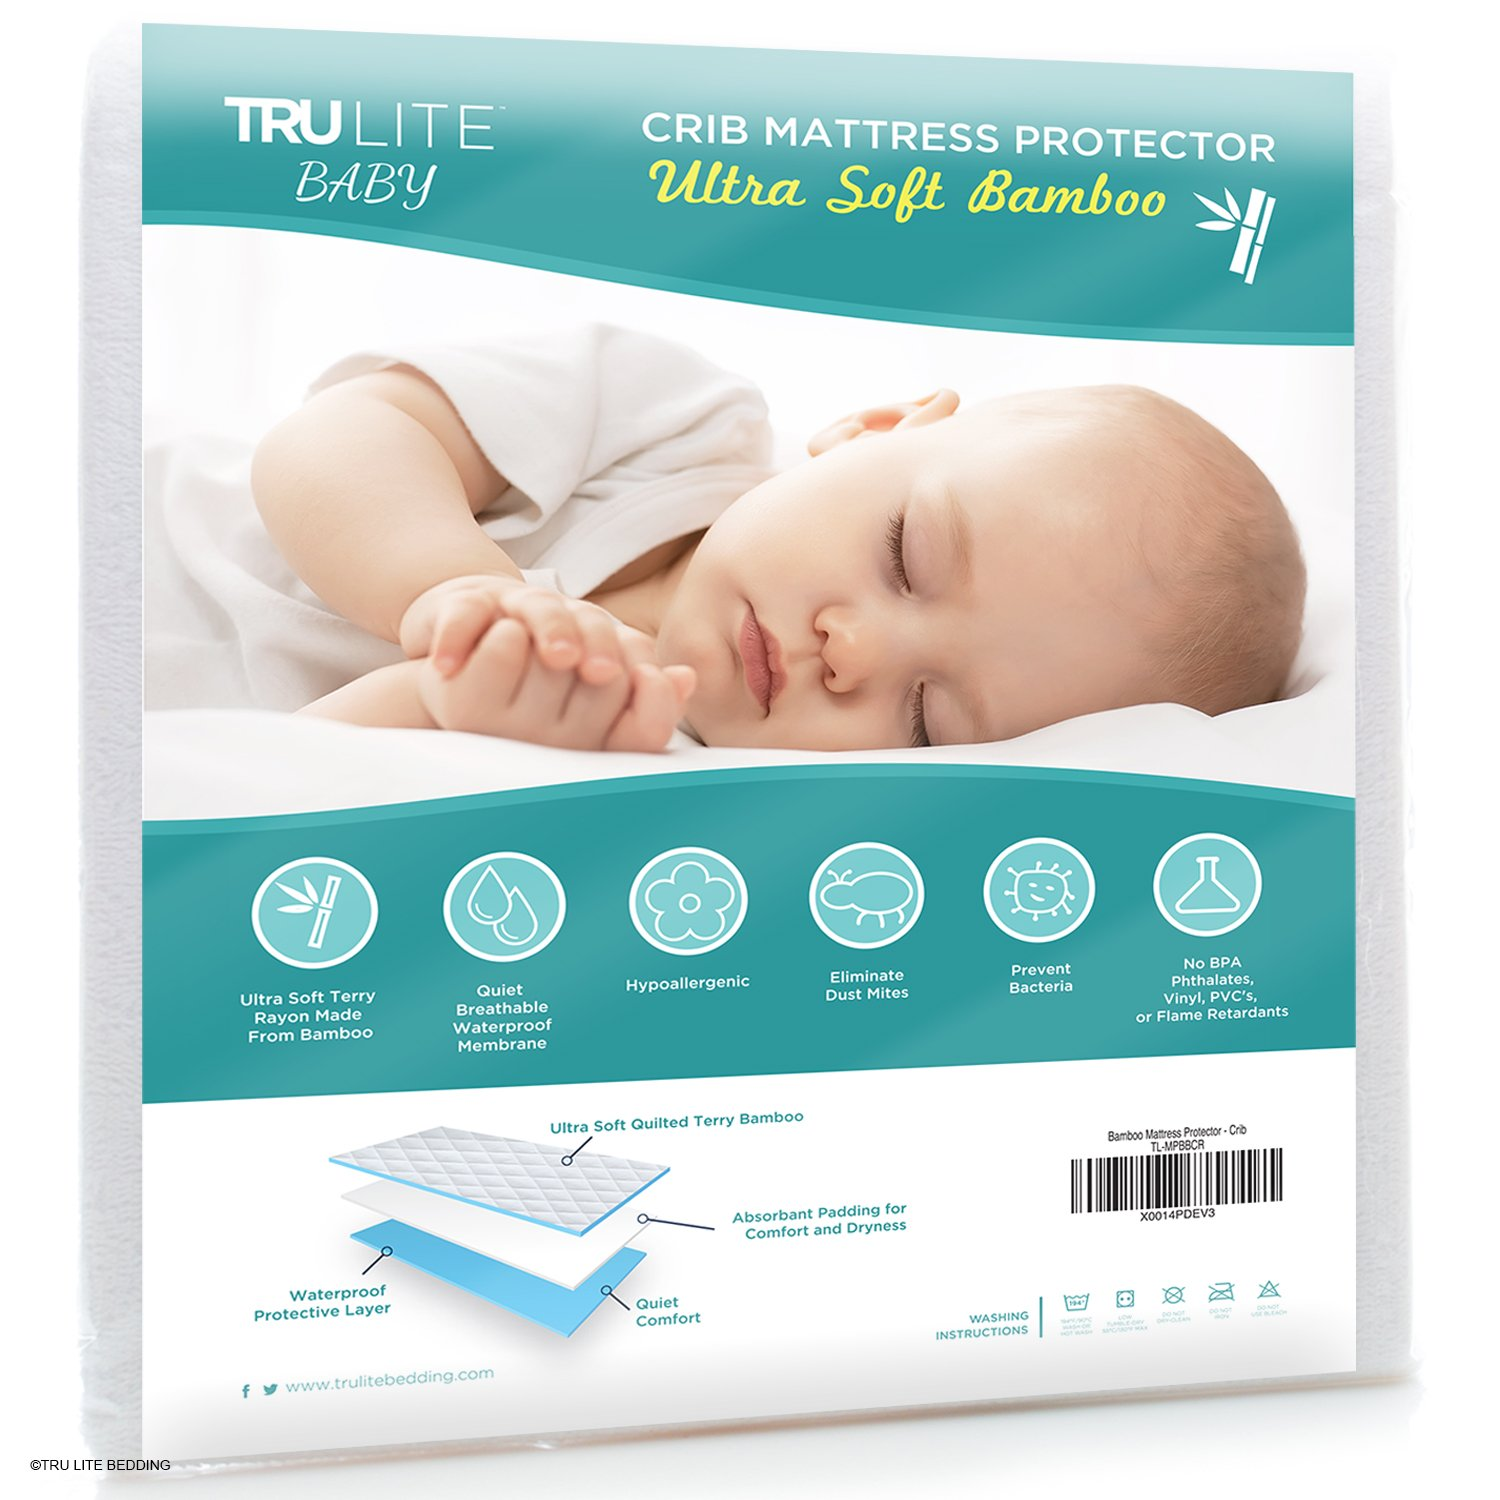 Baby crib mattress amazon - Amazon Com Baby Crib Mattress Protector Pad The Softest Bamboo Rayon Fiber Quilted Terry Waterproof Hypoallergenic Protect From Dust Mites Mold